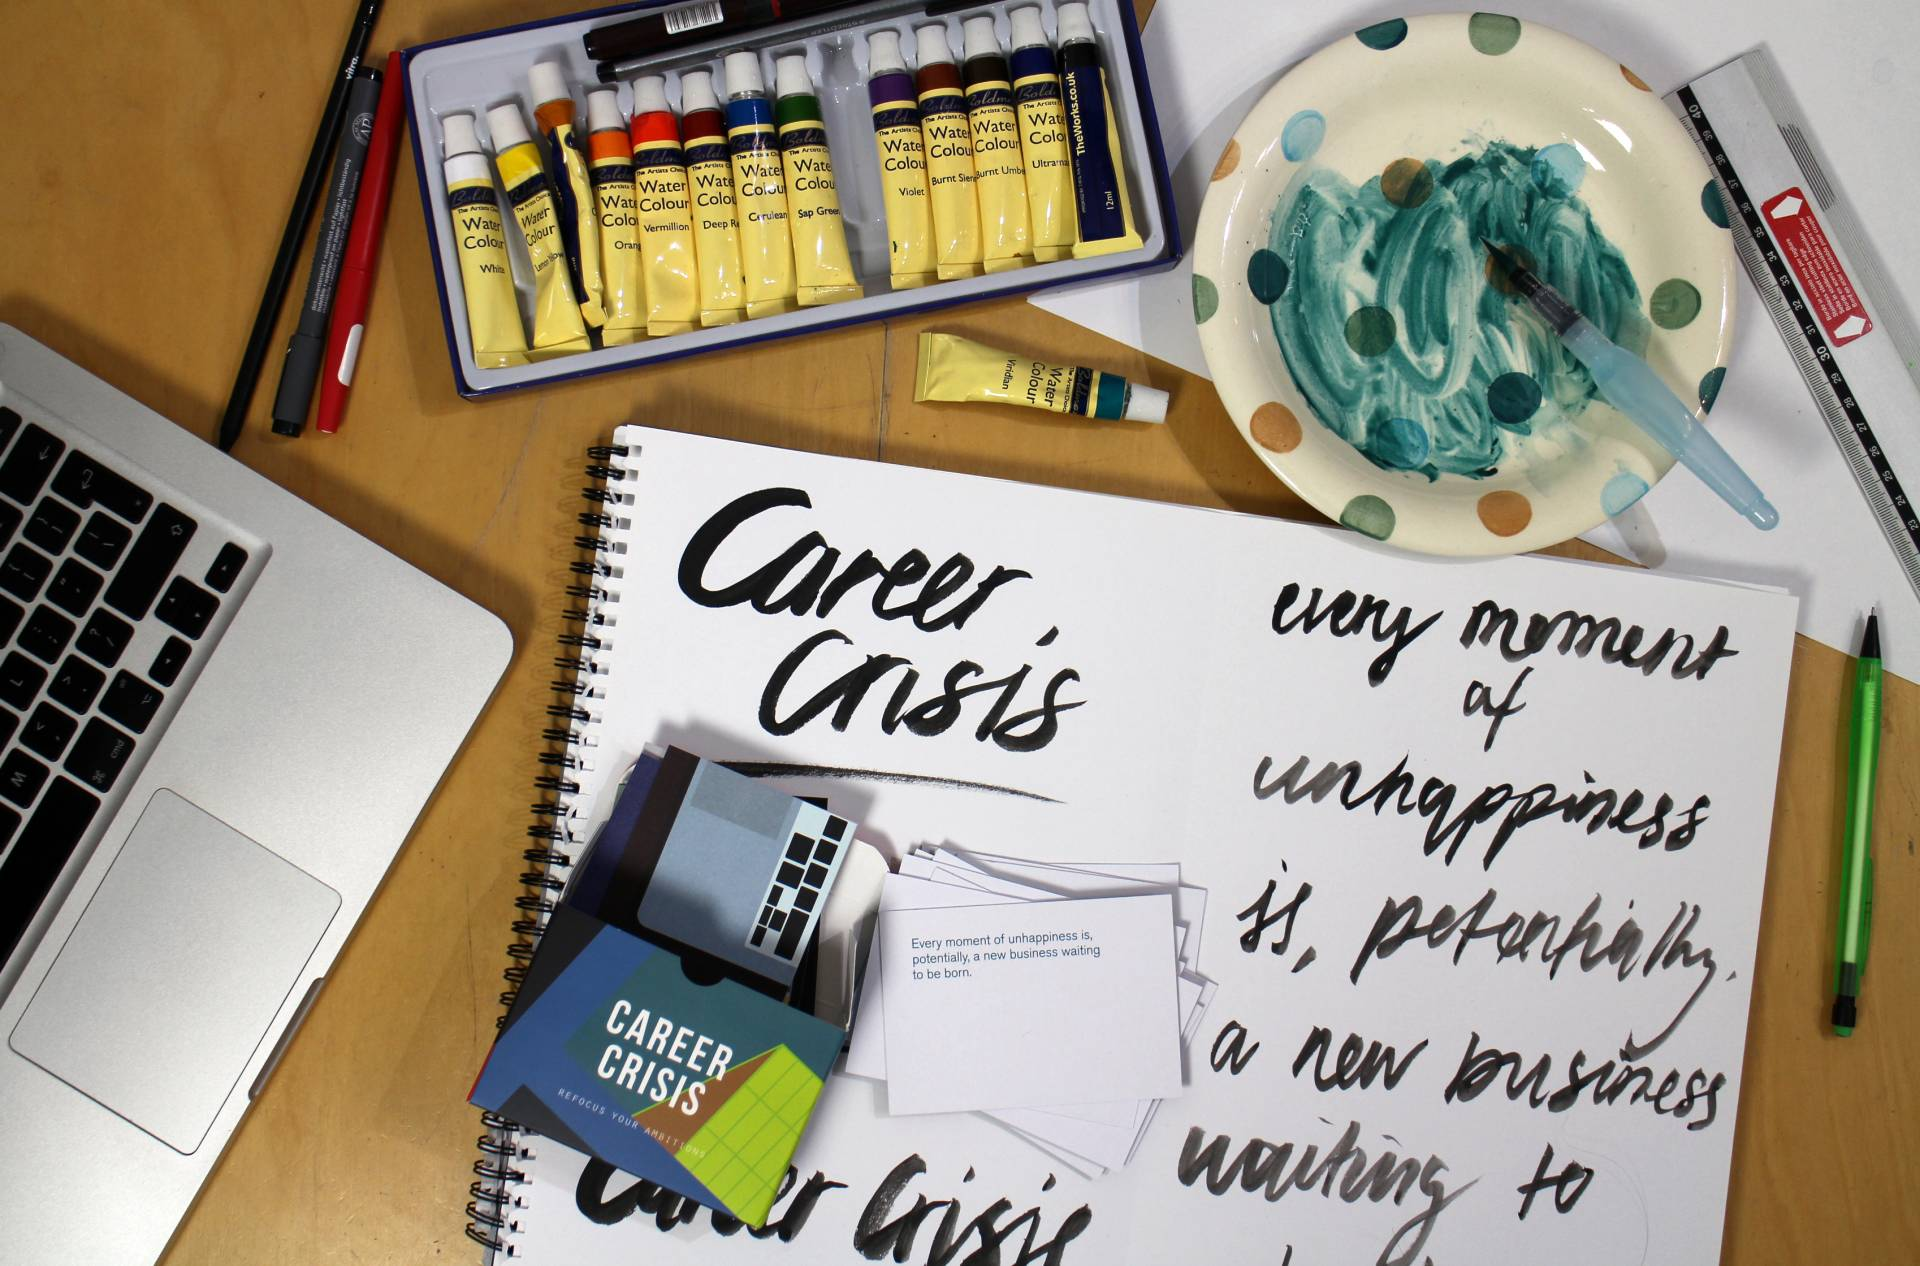 Career Crisis The School of Life